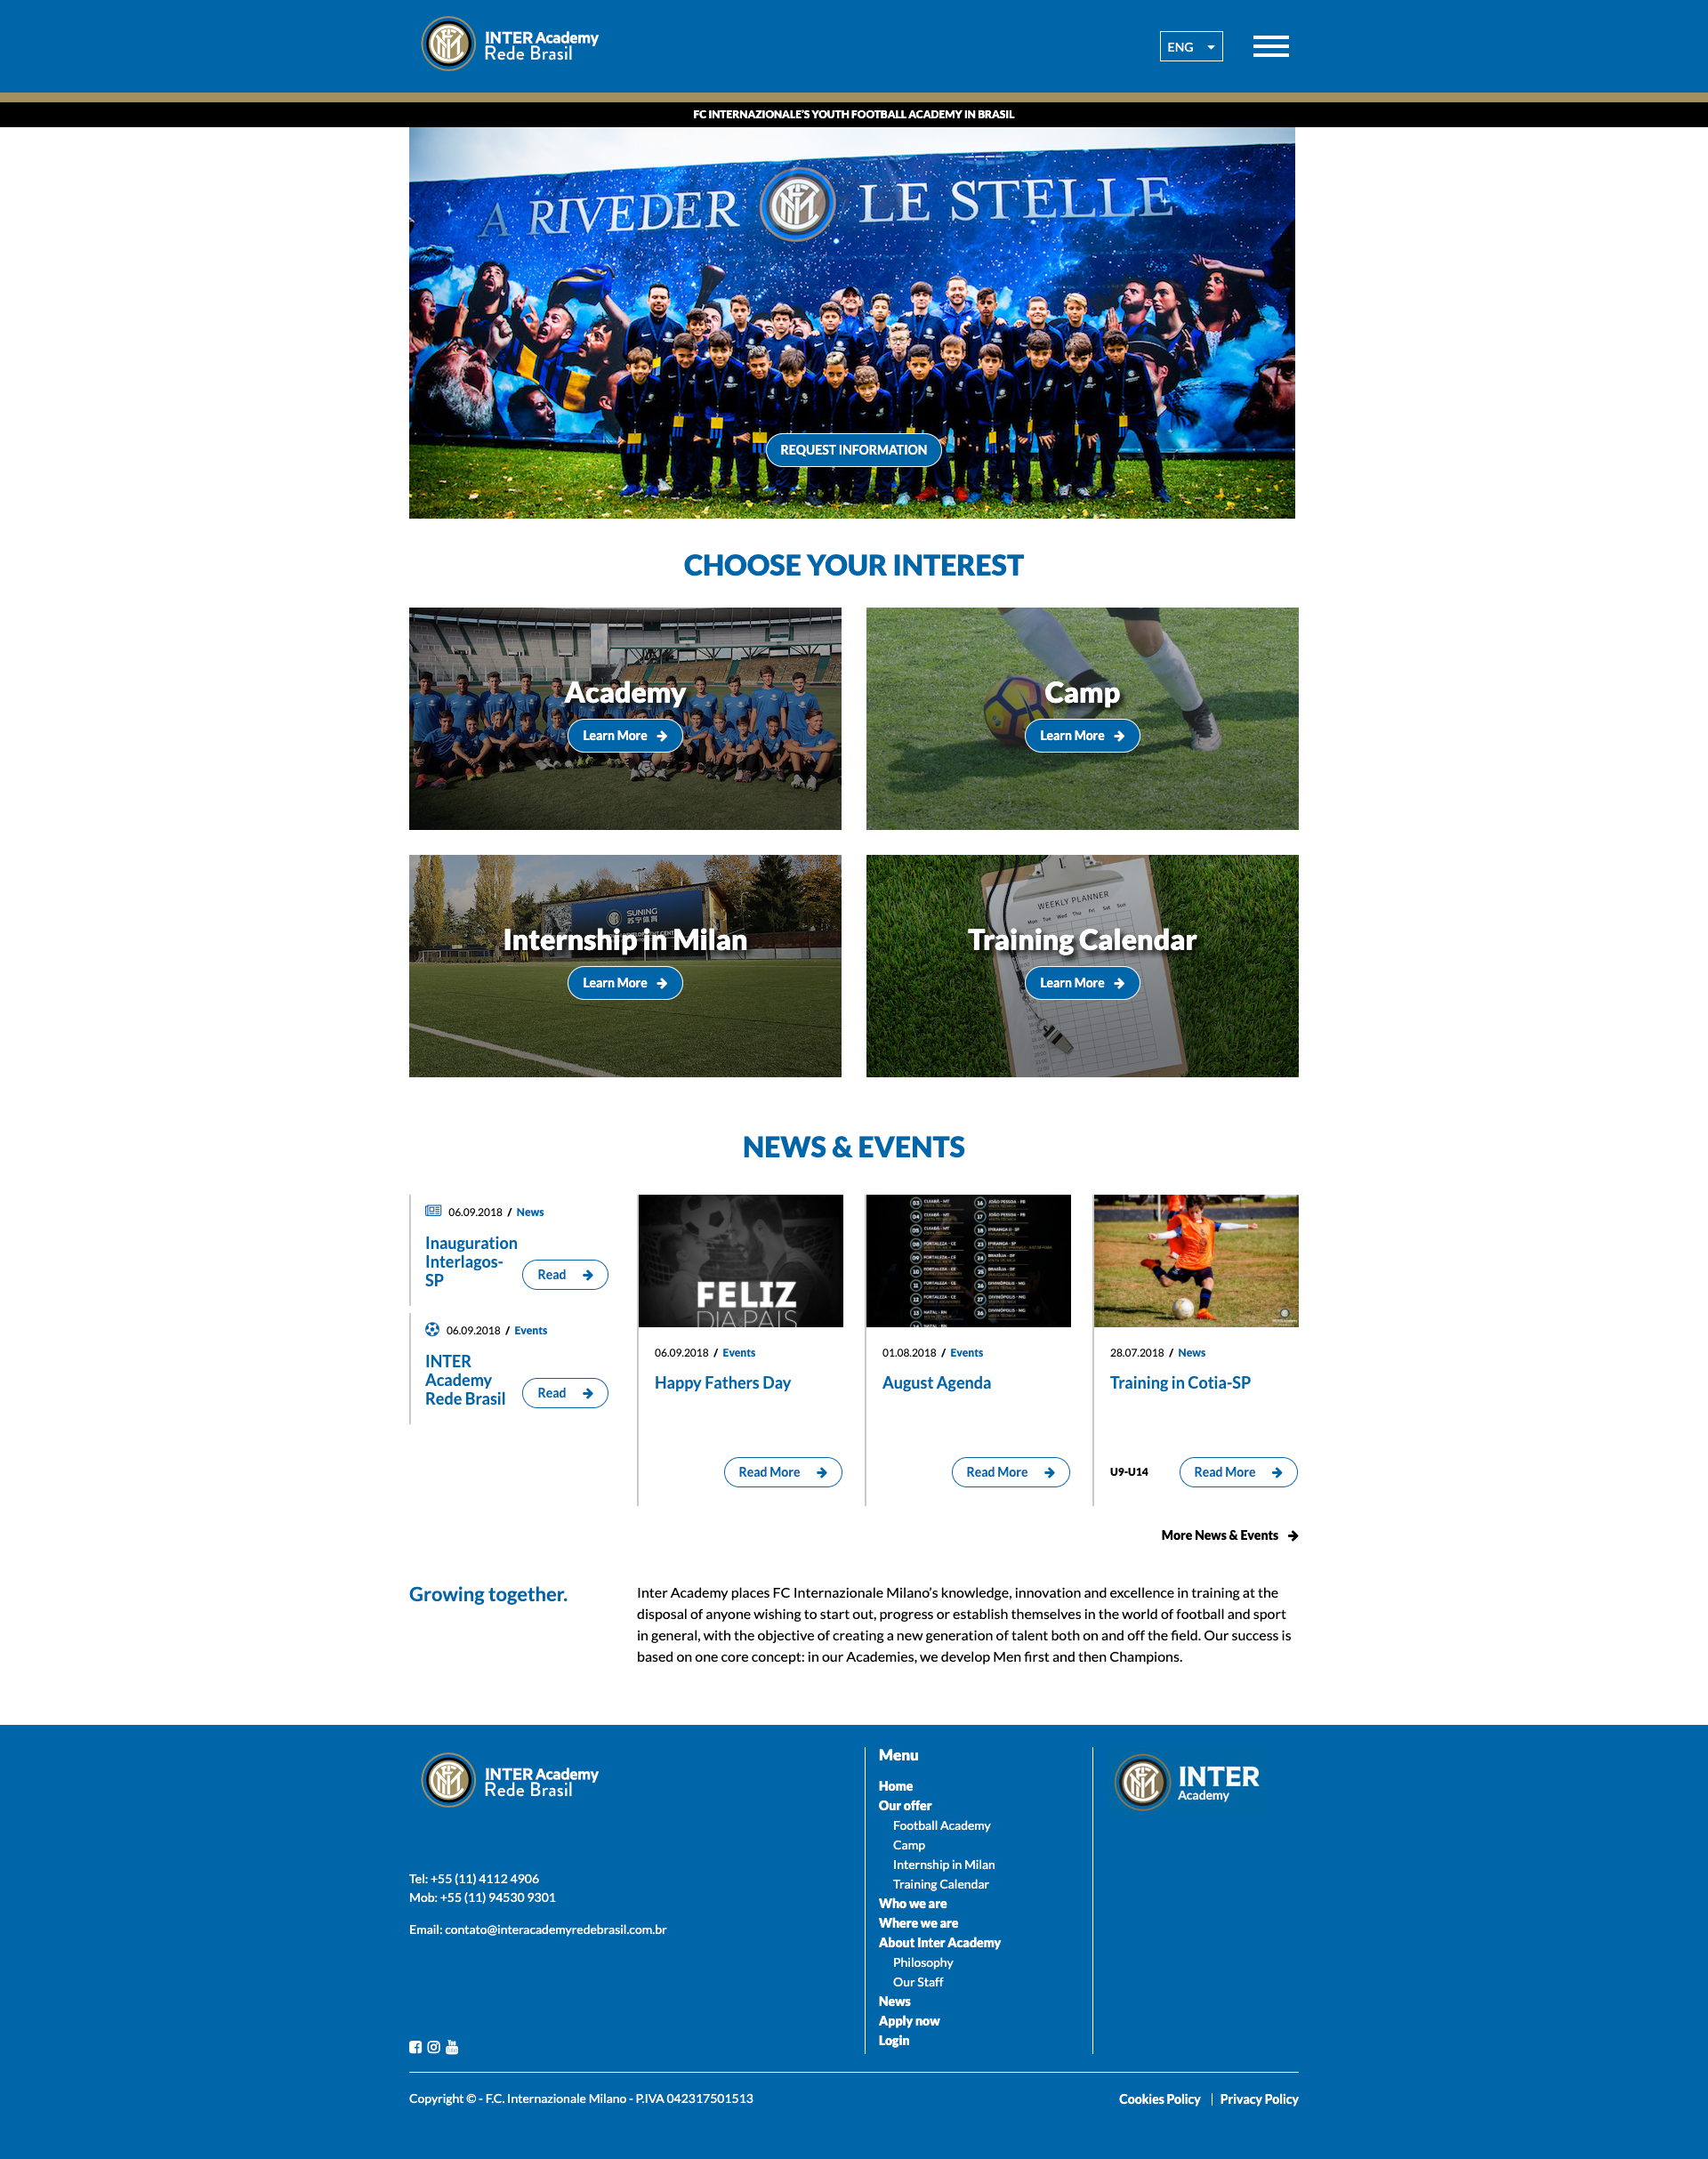 INTER ACADEMY HOME PAGE